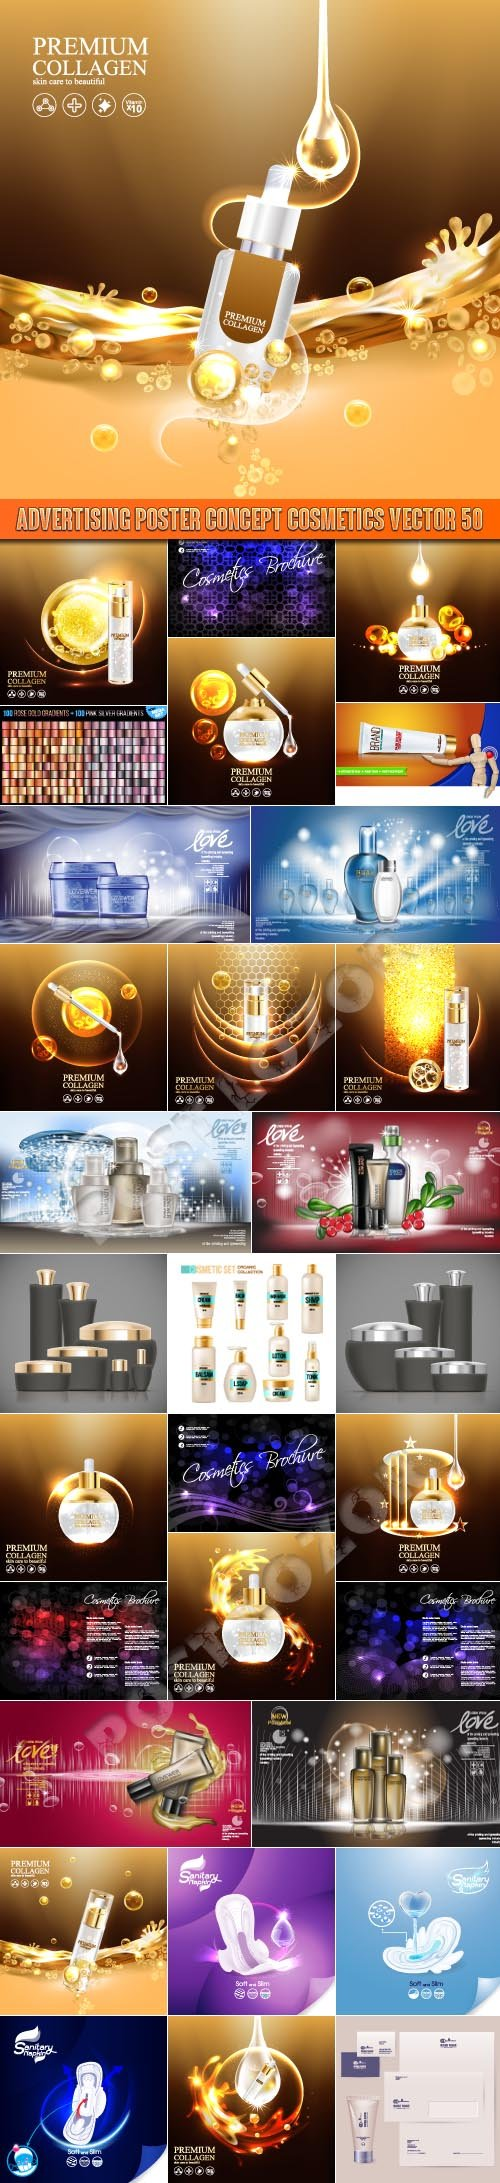 Advertising Poster Concept Cosmetics vector 50